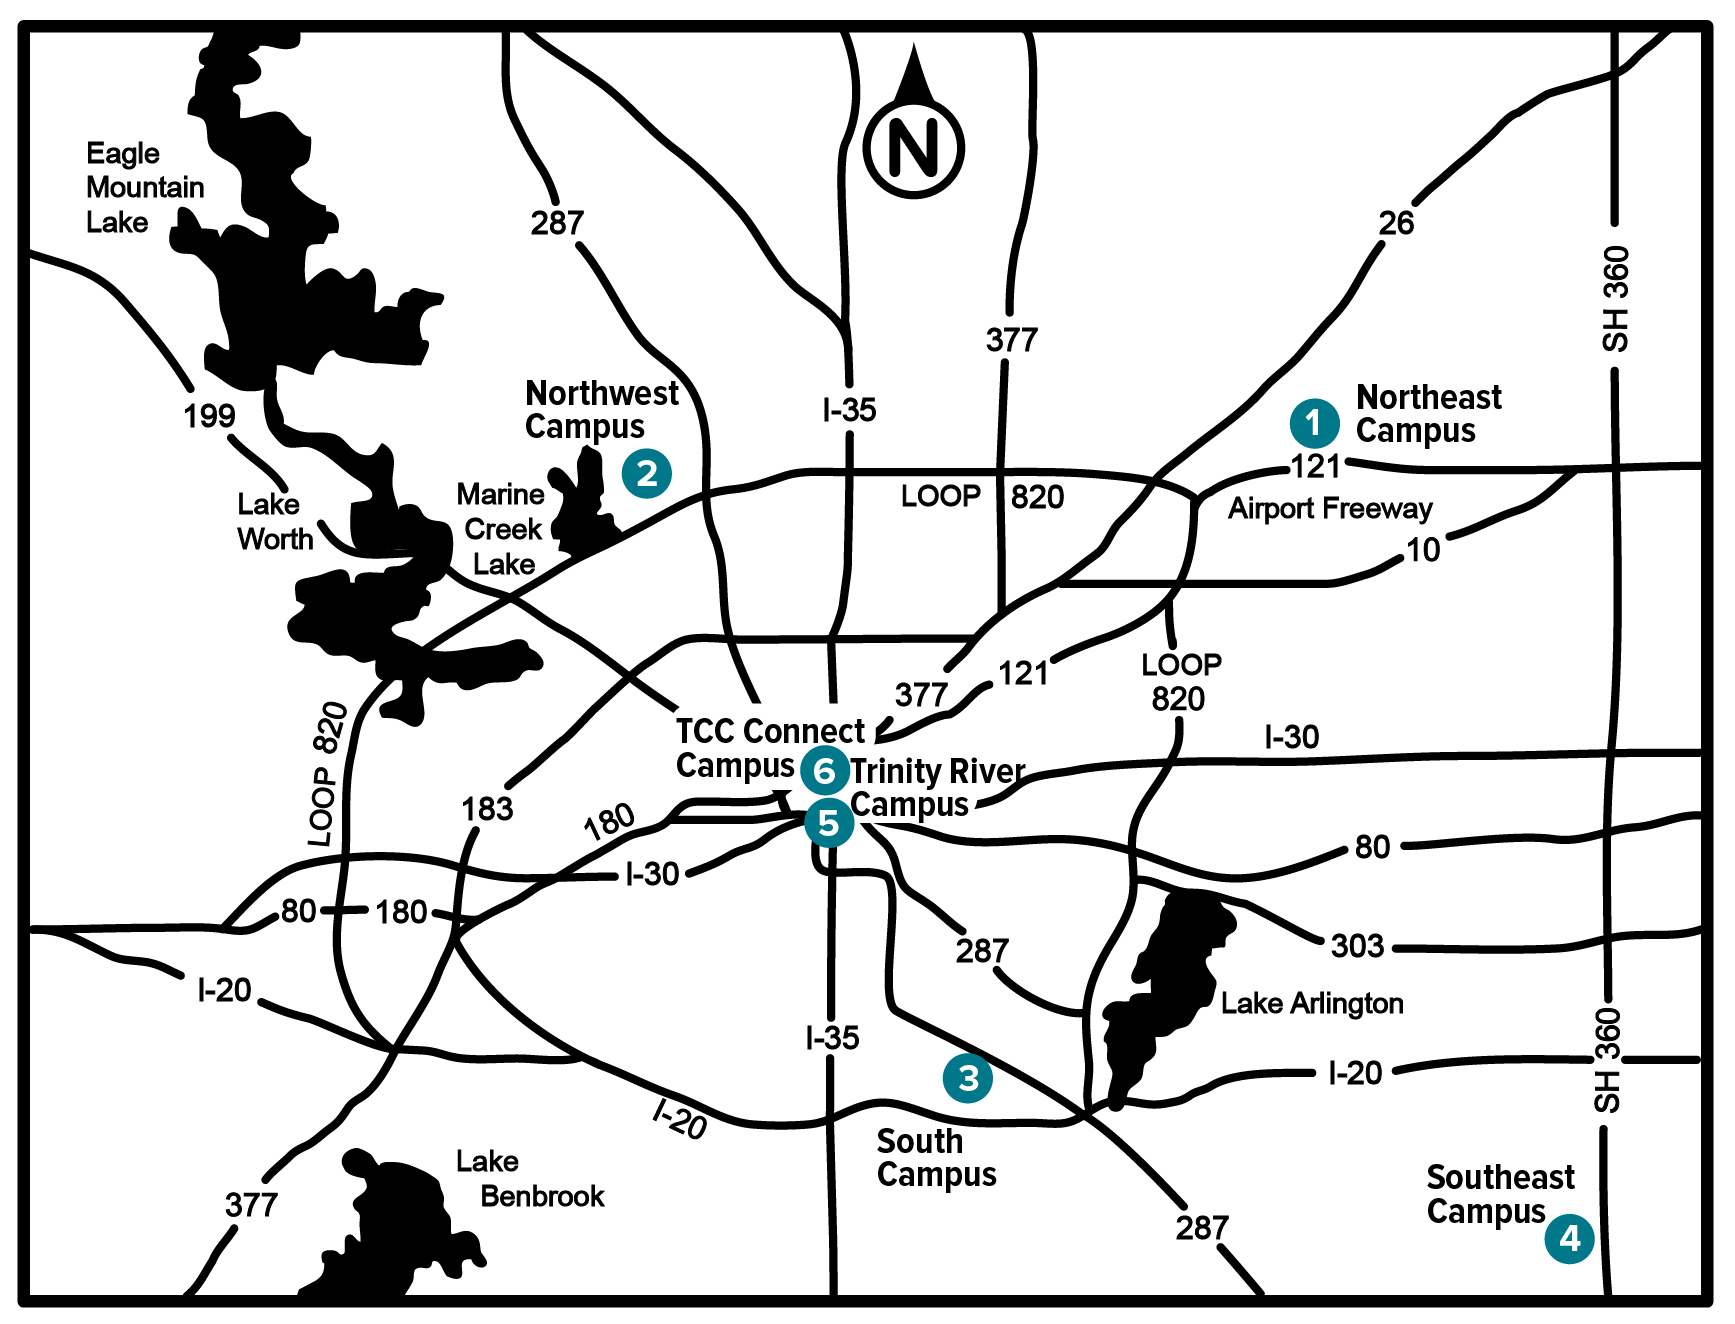 Tarrant County Northwest Campus Map